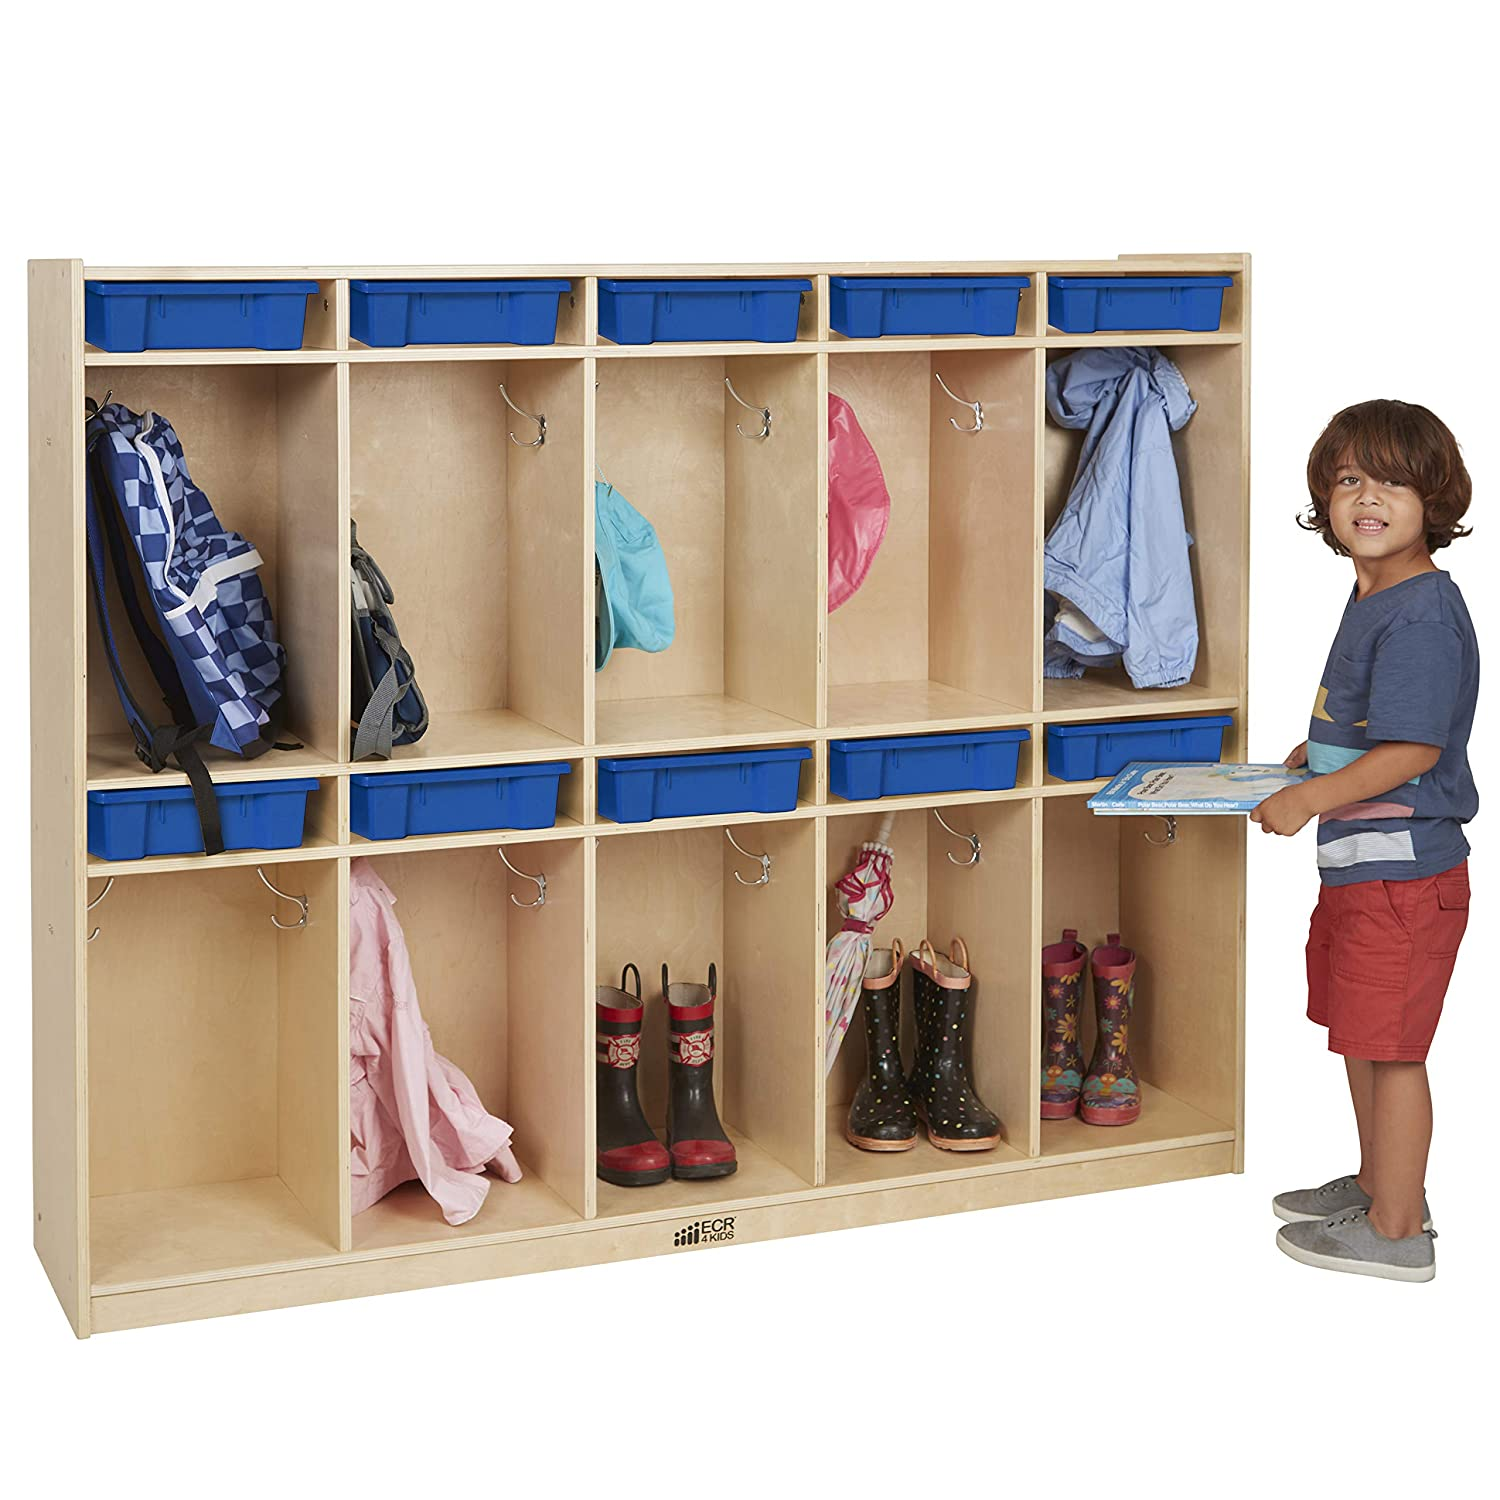 Angeles Value Line Toddler 5-Section Locker Multi Kids Storage Shelves Coat Rack with 5 Cubbies Classroom Organizer for Daycare//Montessori//Playroom